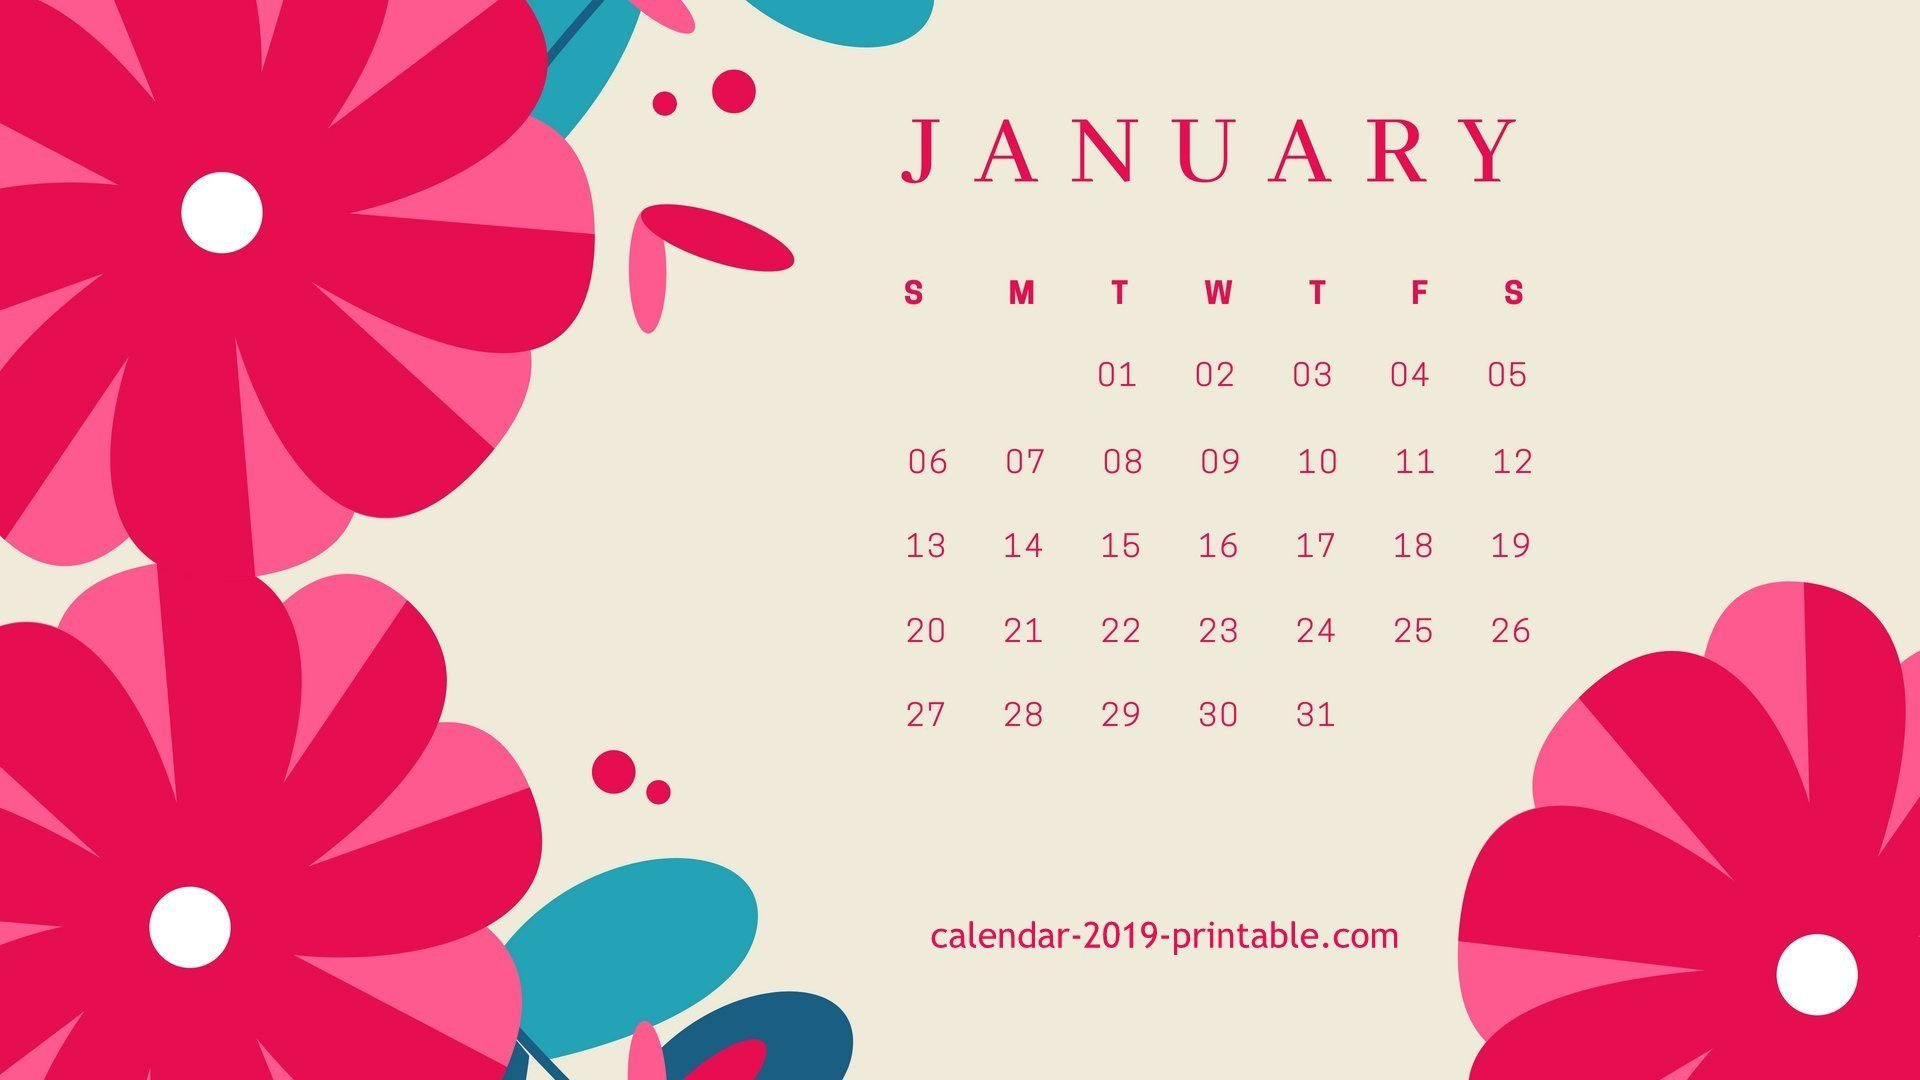 January 2019 Flower Desktop Calendar Wallpaper | 2019 Calendars In Calendar 2019 On Computer